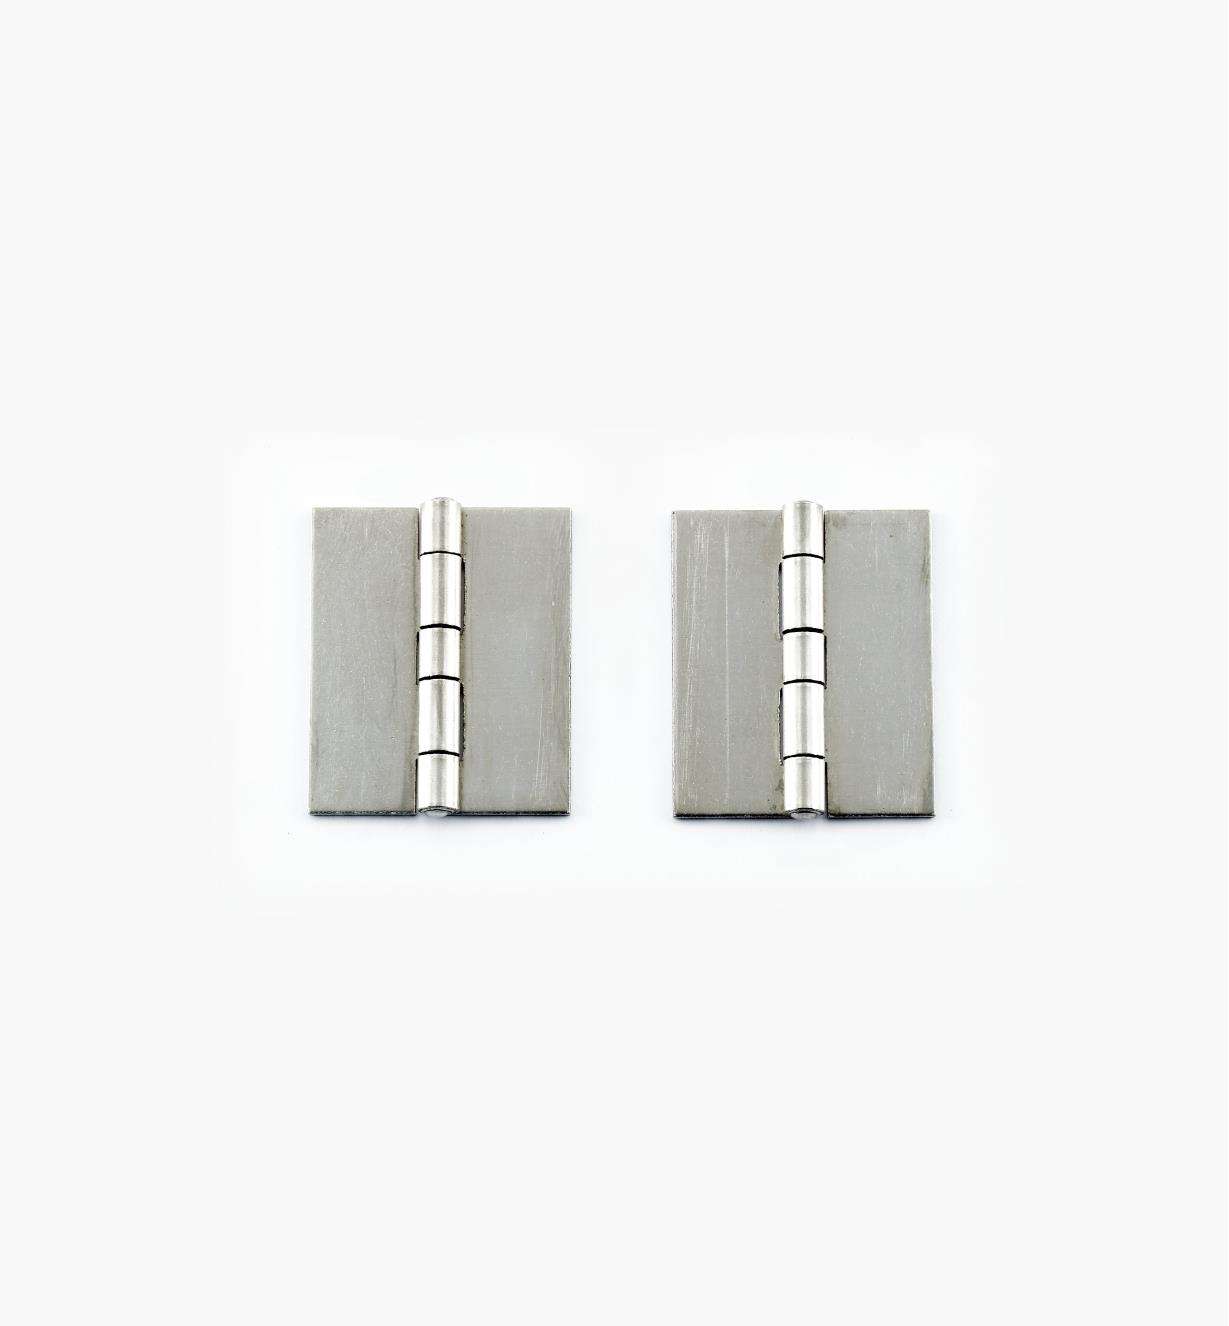 "A06508 - Fixed-Pin Welding Butt Hinges, 2"" x 1 5/8"", pr. (0.065"" thick)"